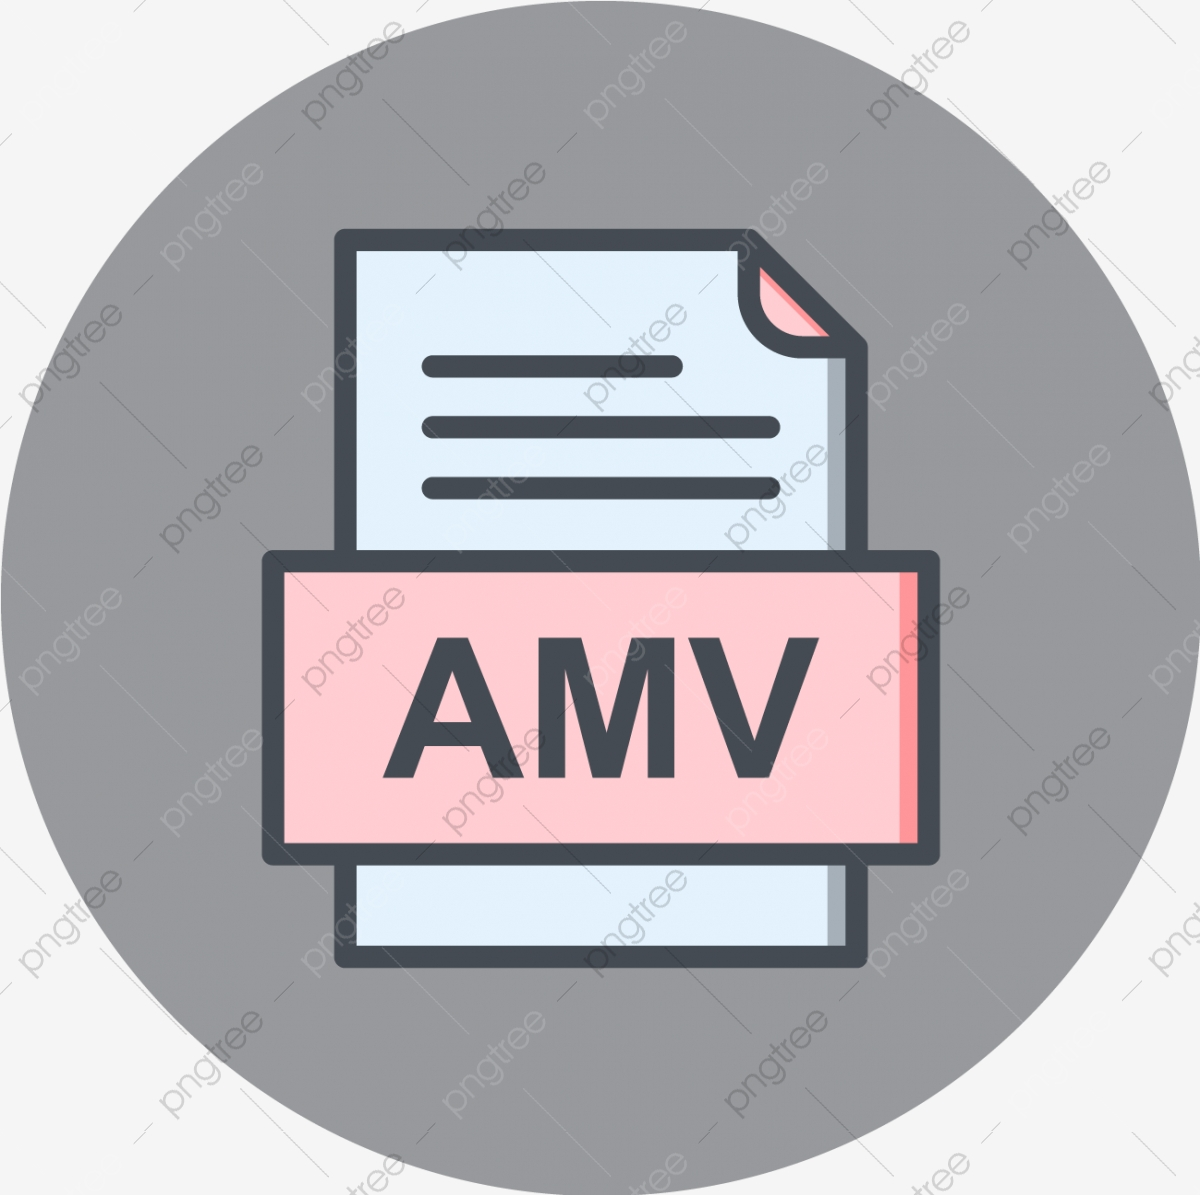 Amv File Document Icon Amv Document File PNG and Vector with 1200x1195